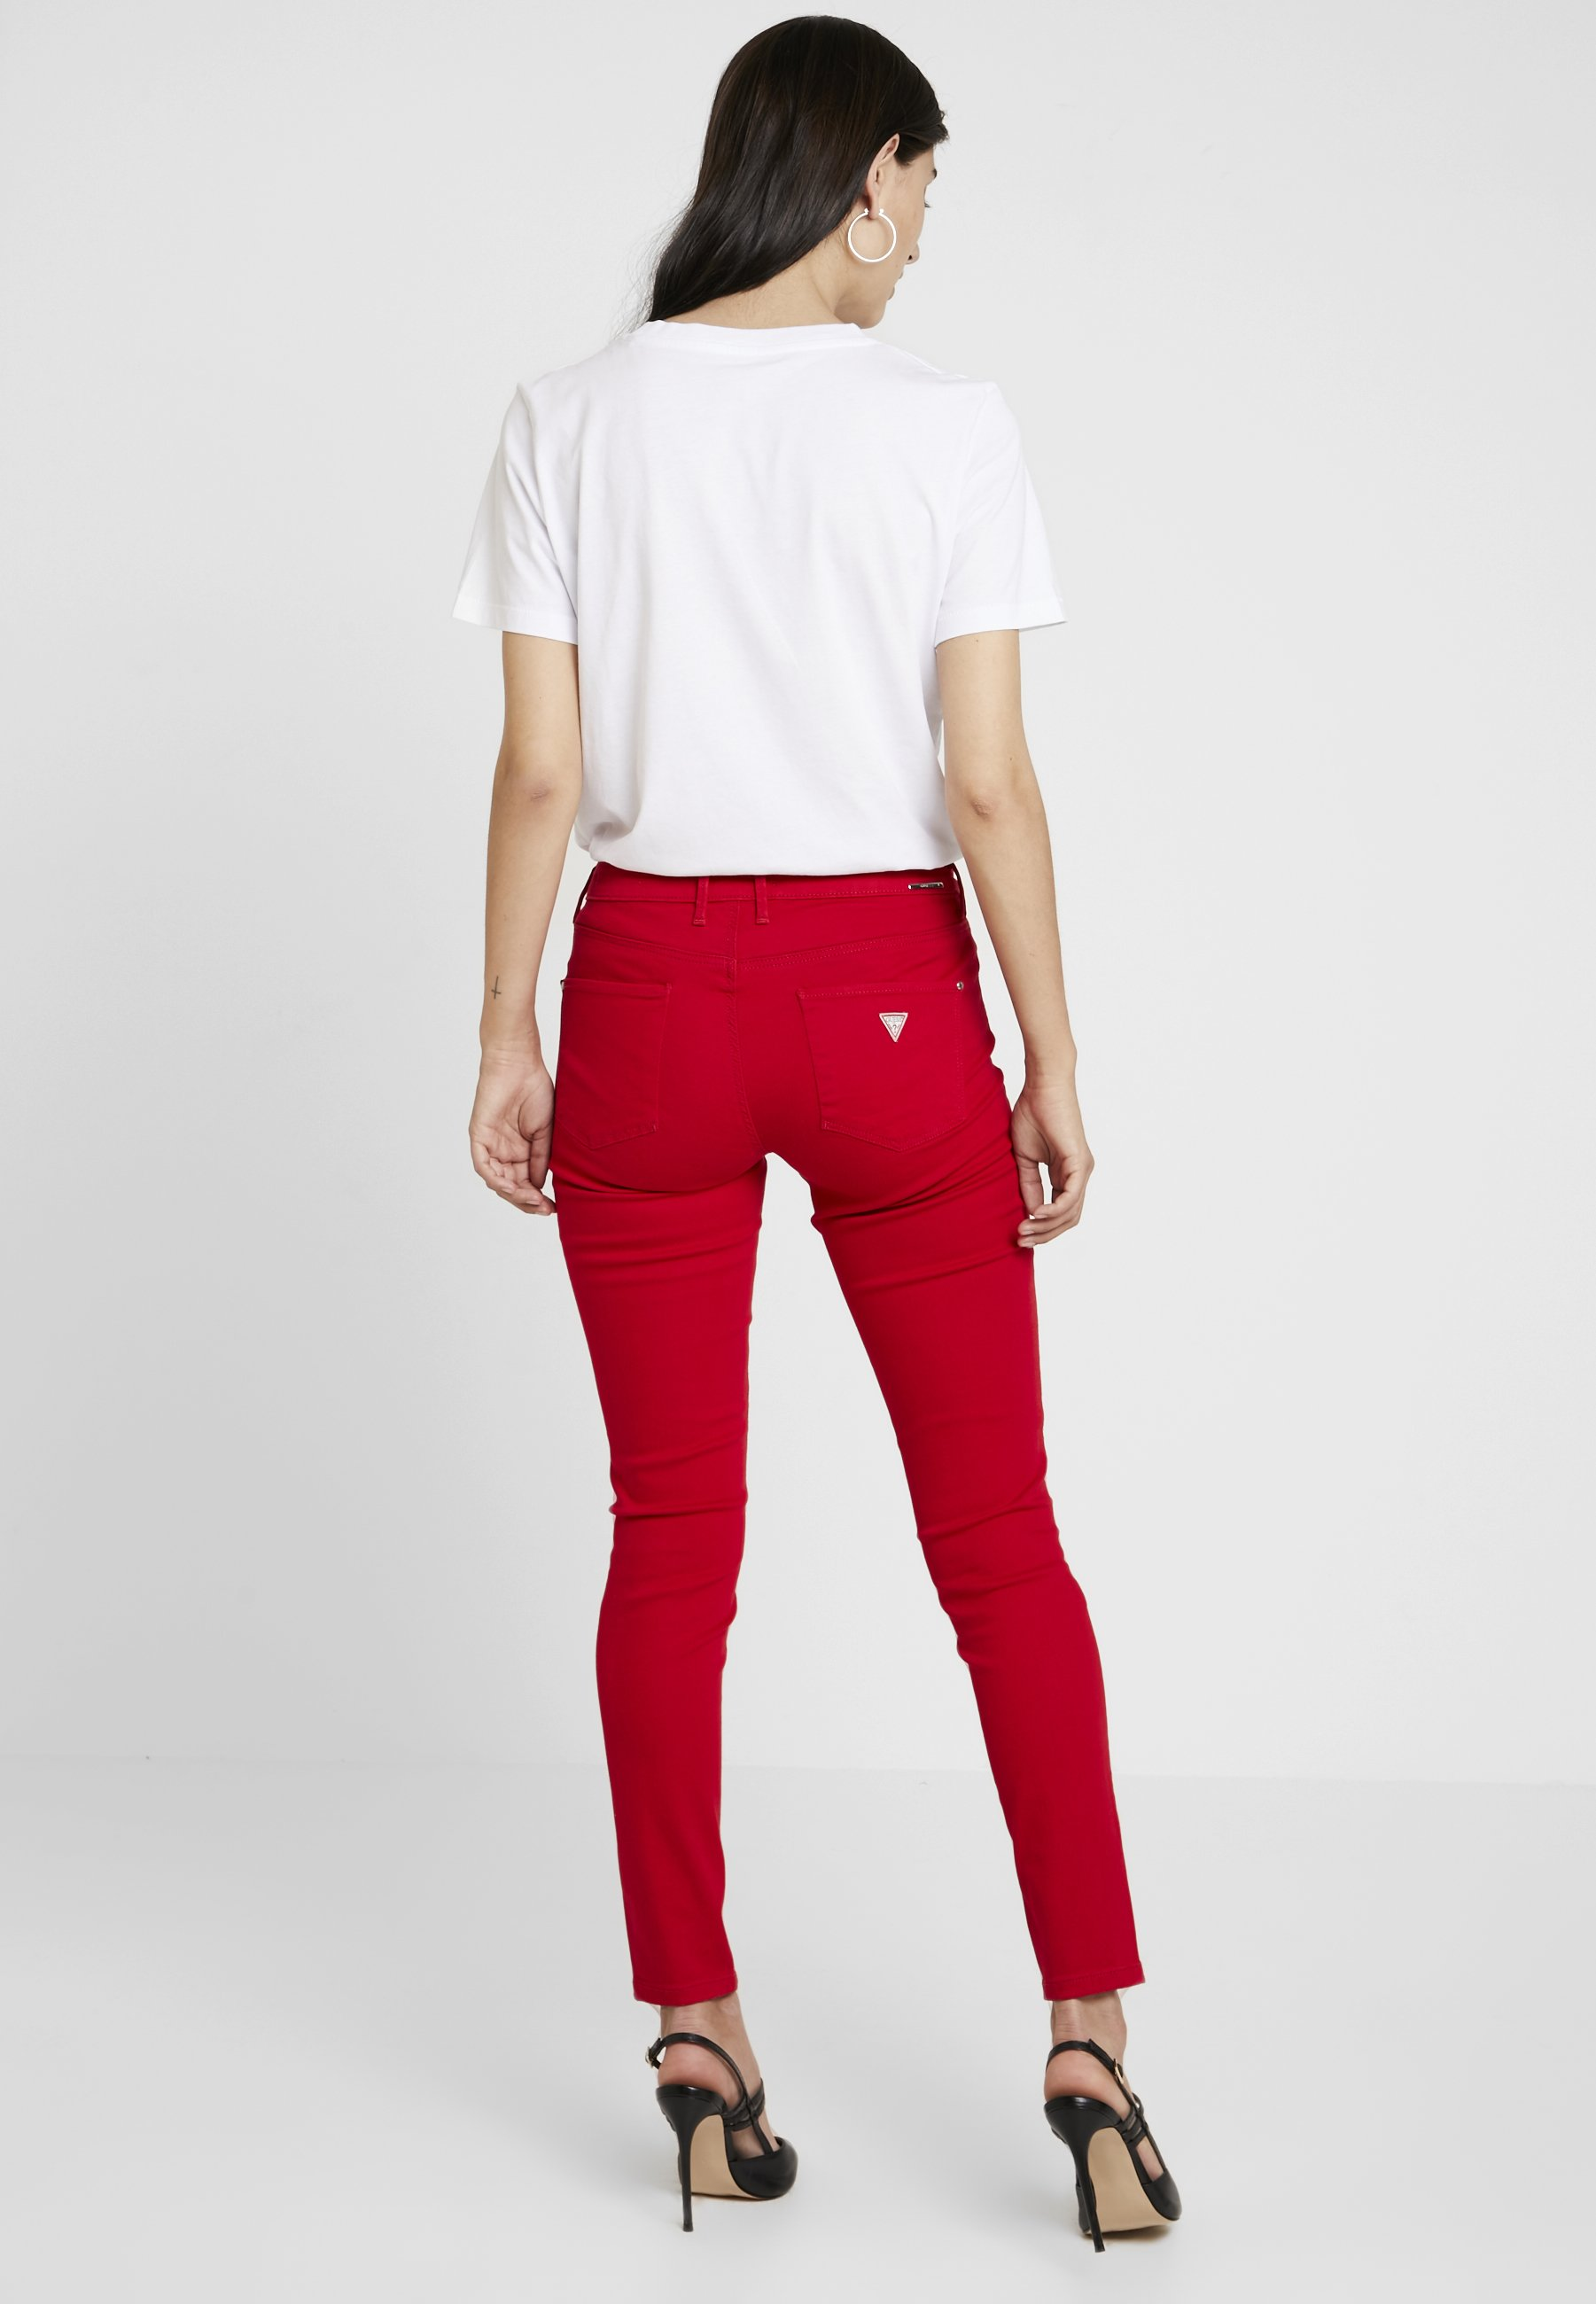 MidJeans Jegging Attitude Red Guess Skinny 4qALRj35